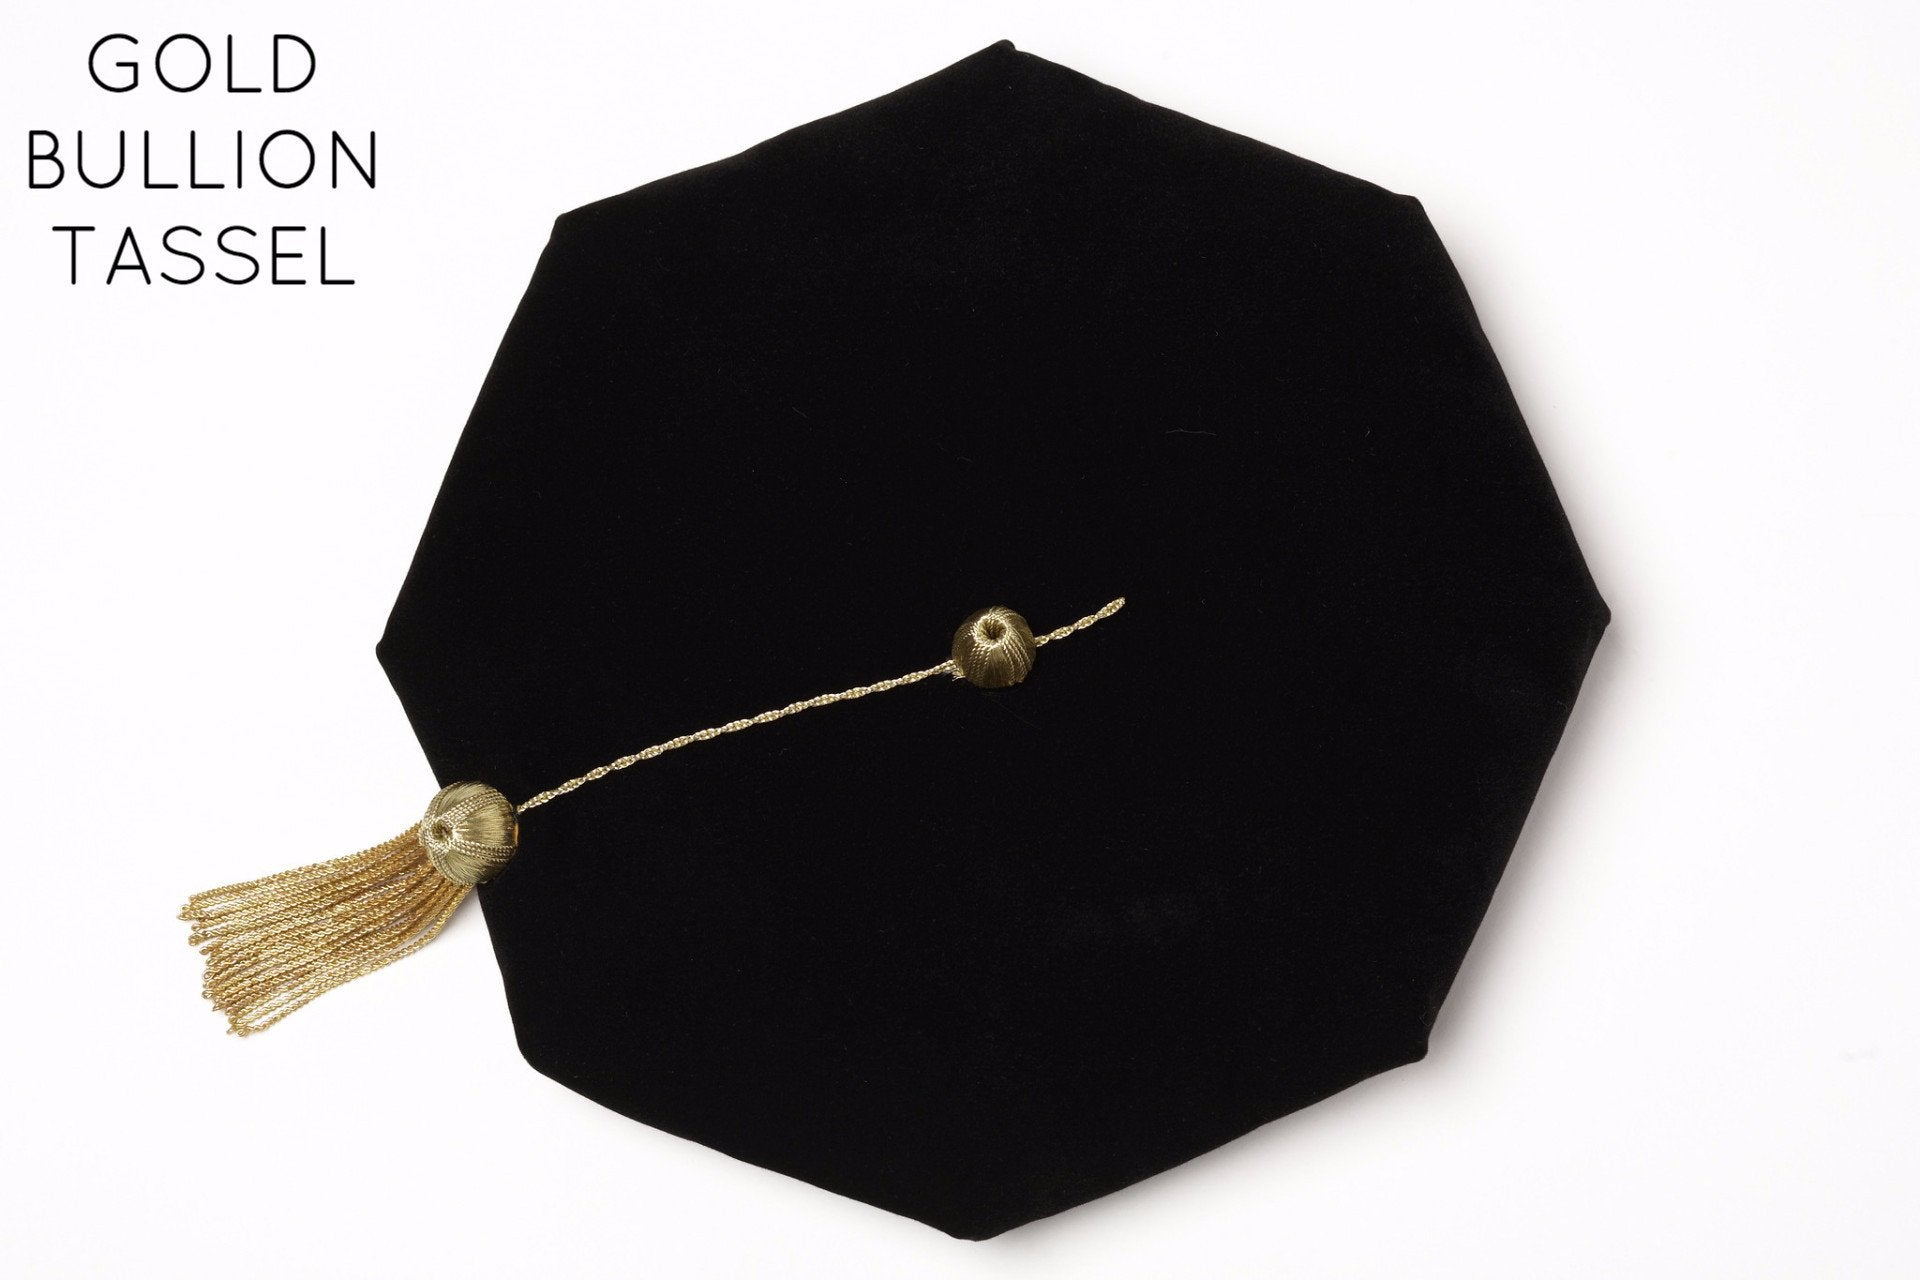 Black Velvet Graduation Doctoral Tam (Cap) with Gold Bullion Tassel